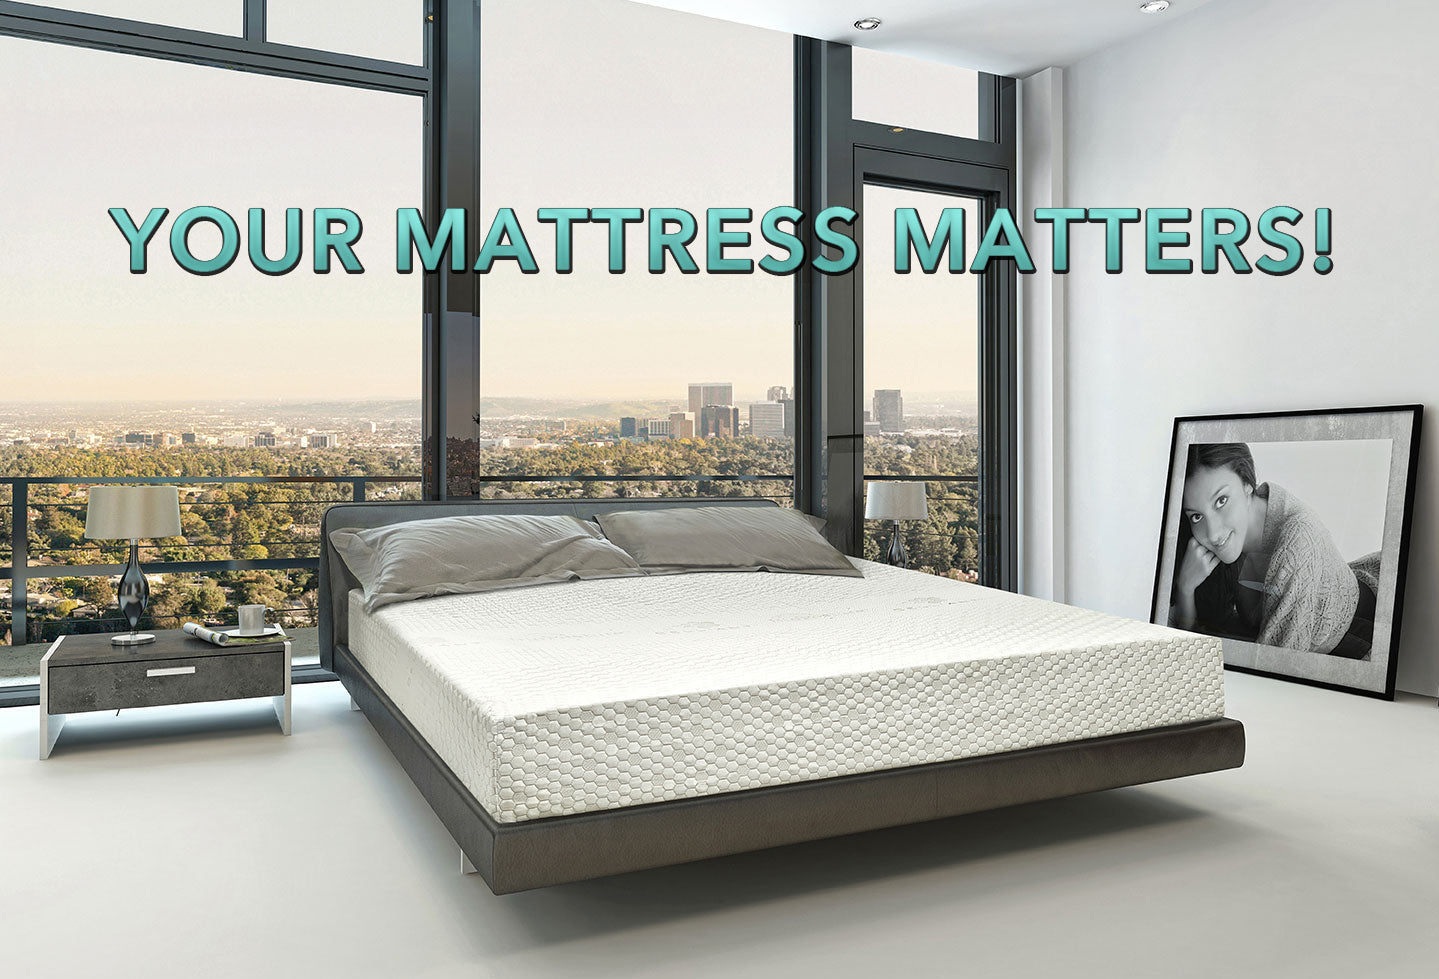 BioPosture the doctor re mended mattress for back pain